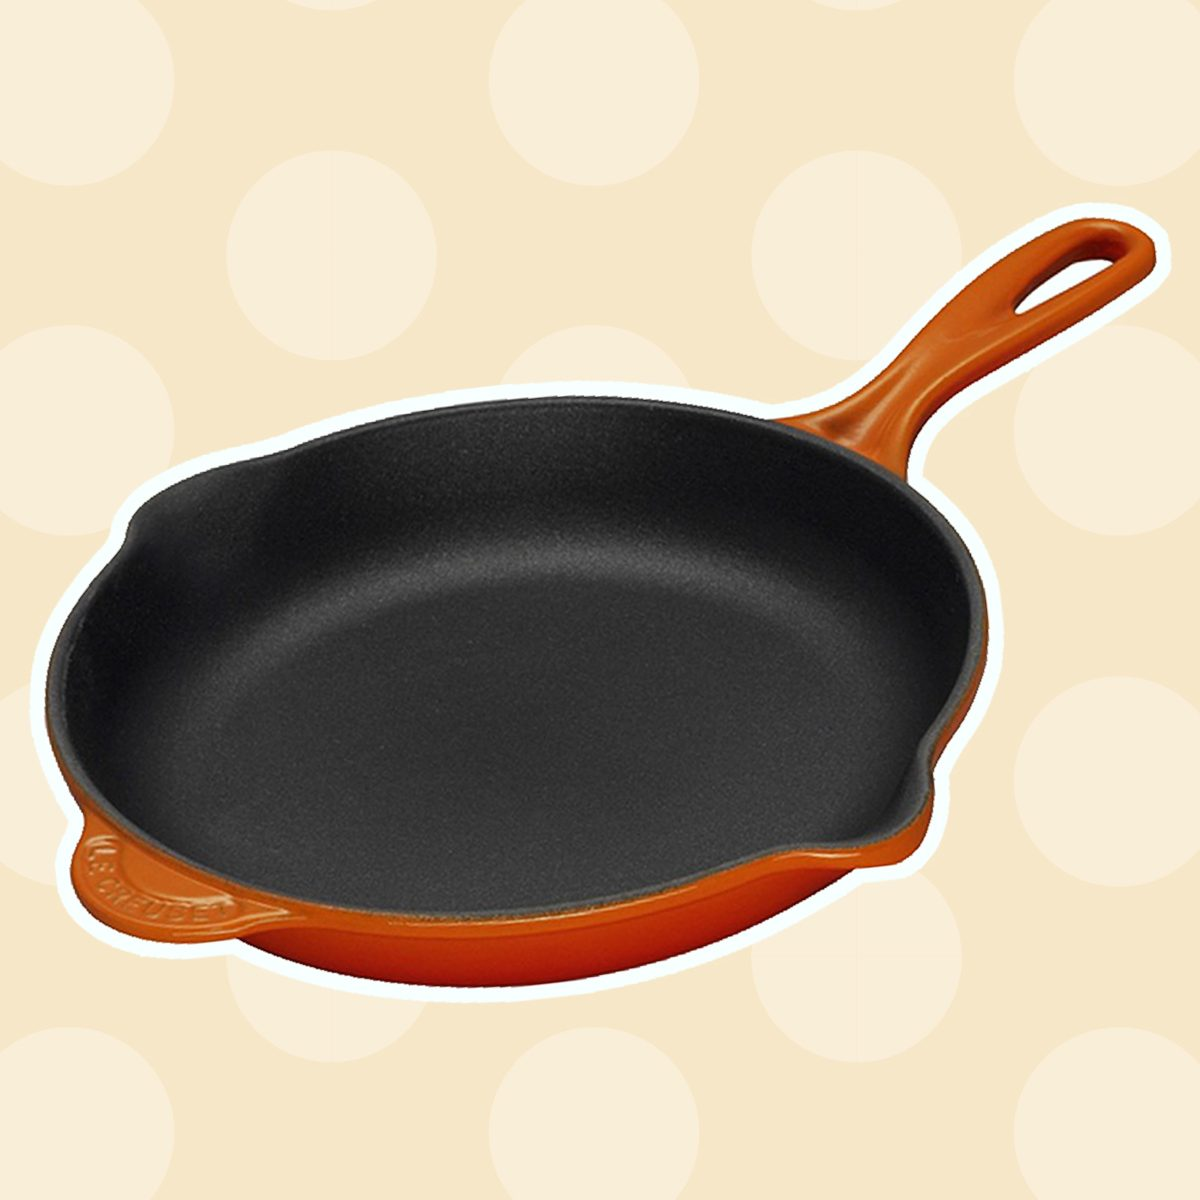 Le Creuset Enameled Cast-Iron